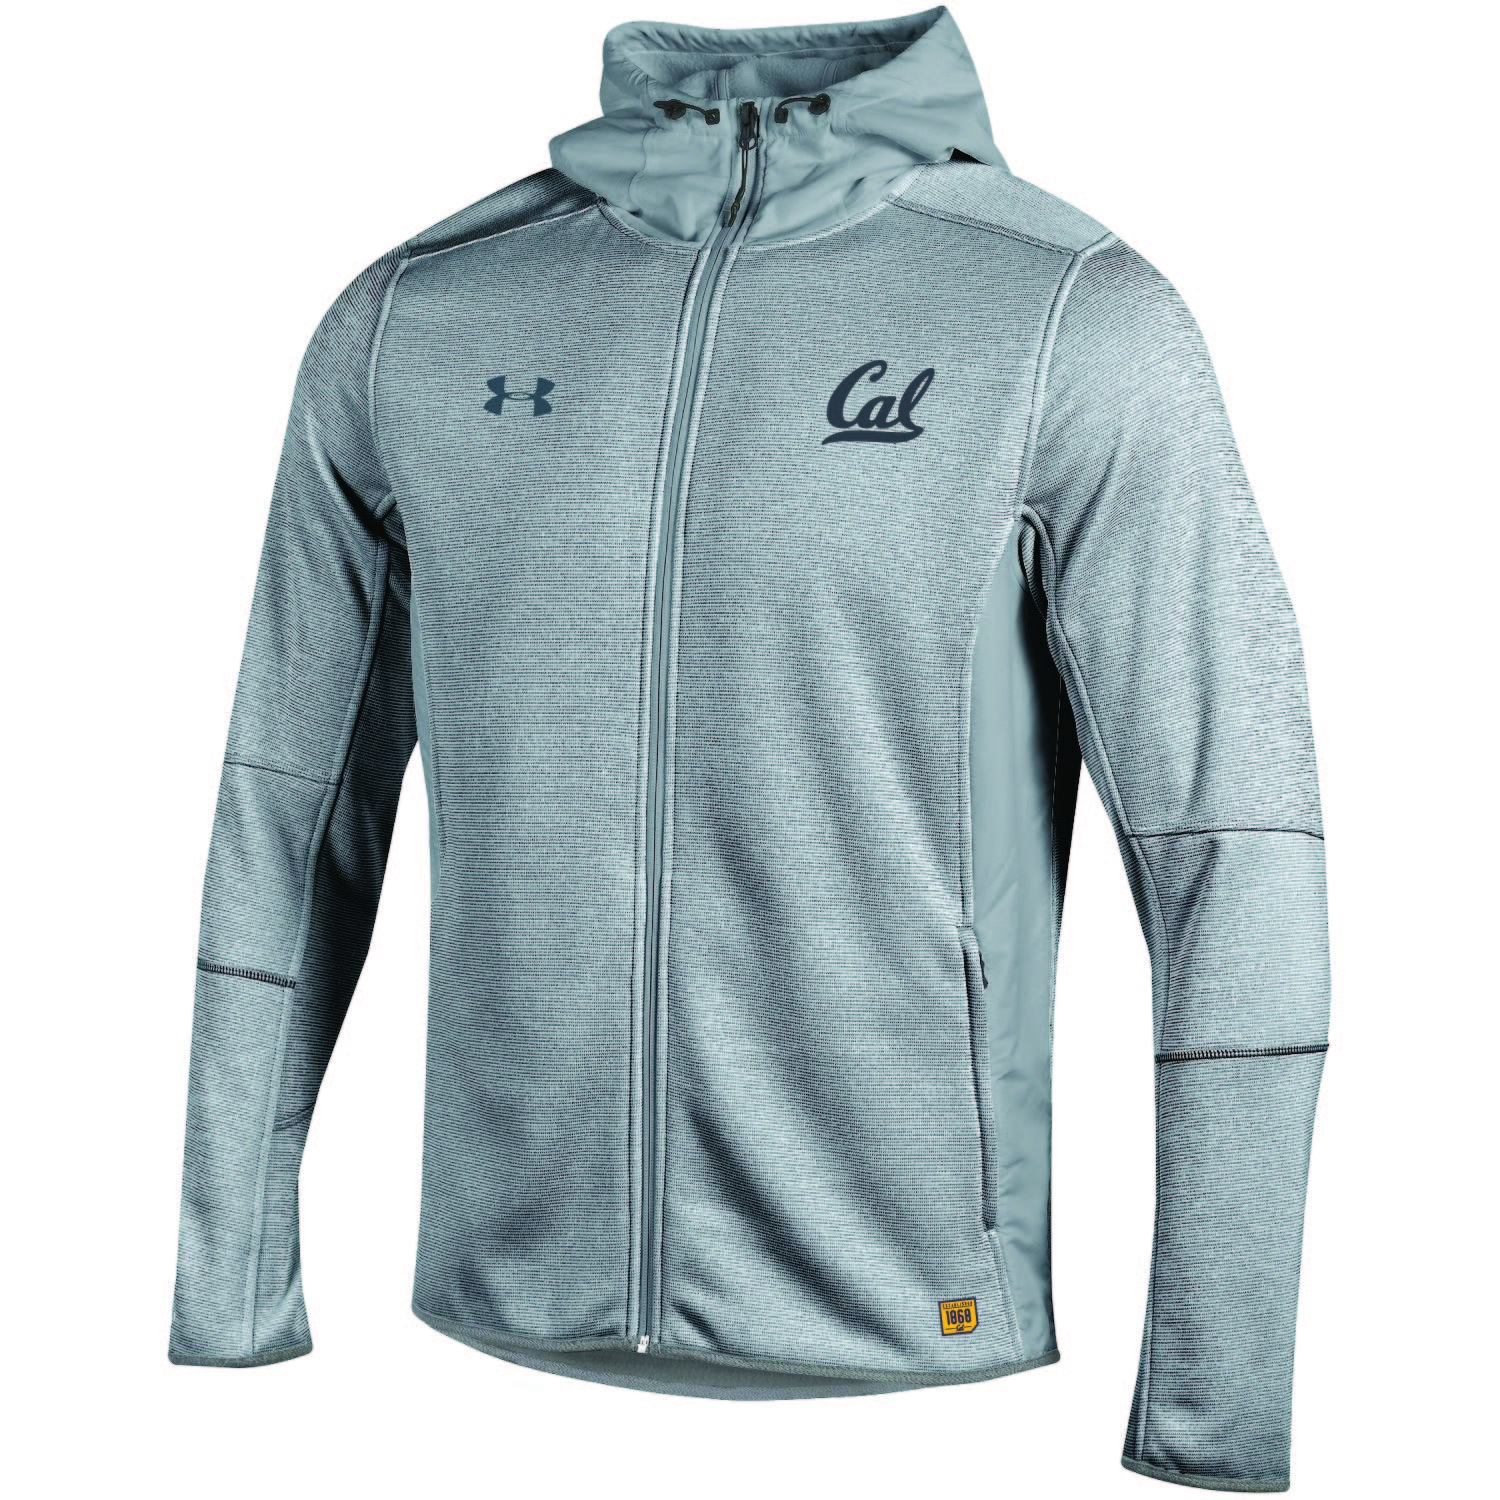 University of California Berkeley Under Armour Sideline Swacket